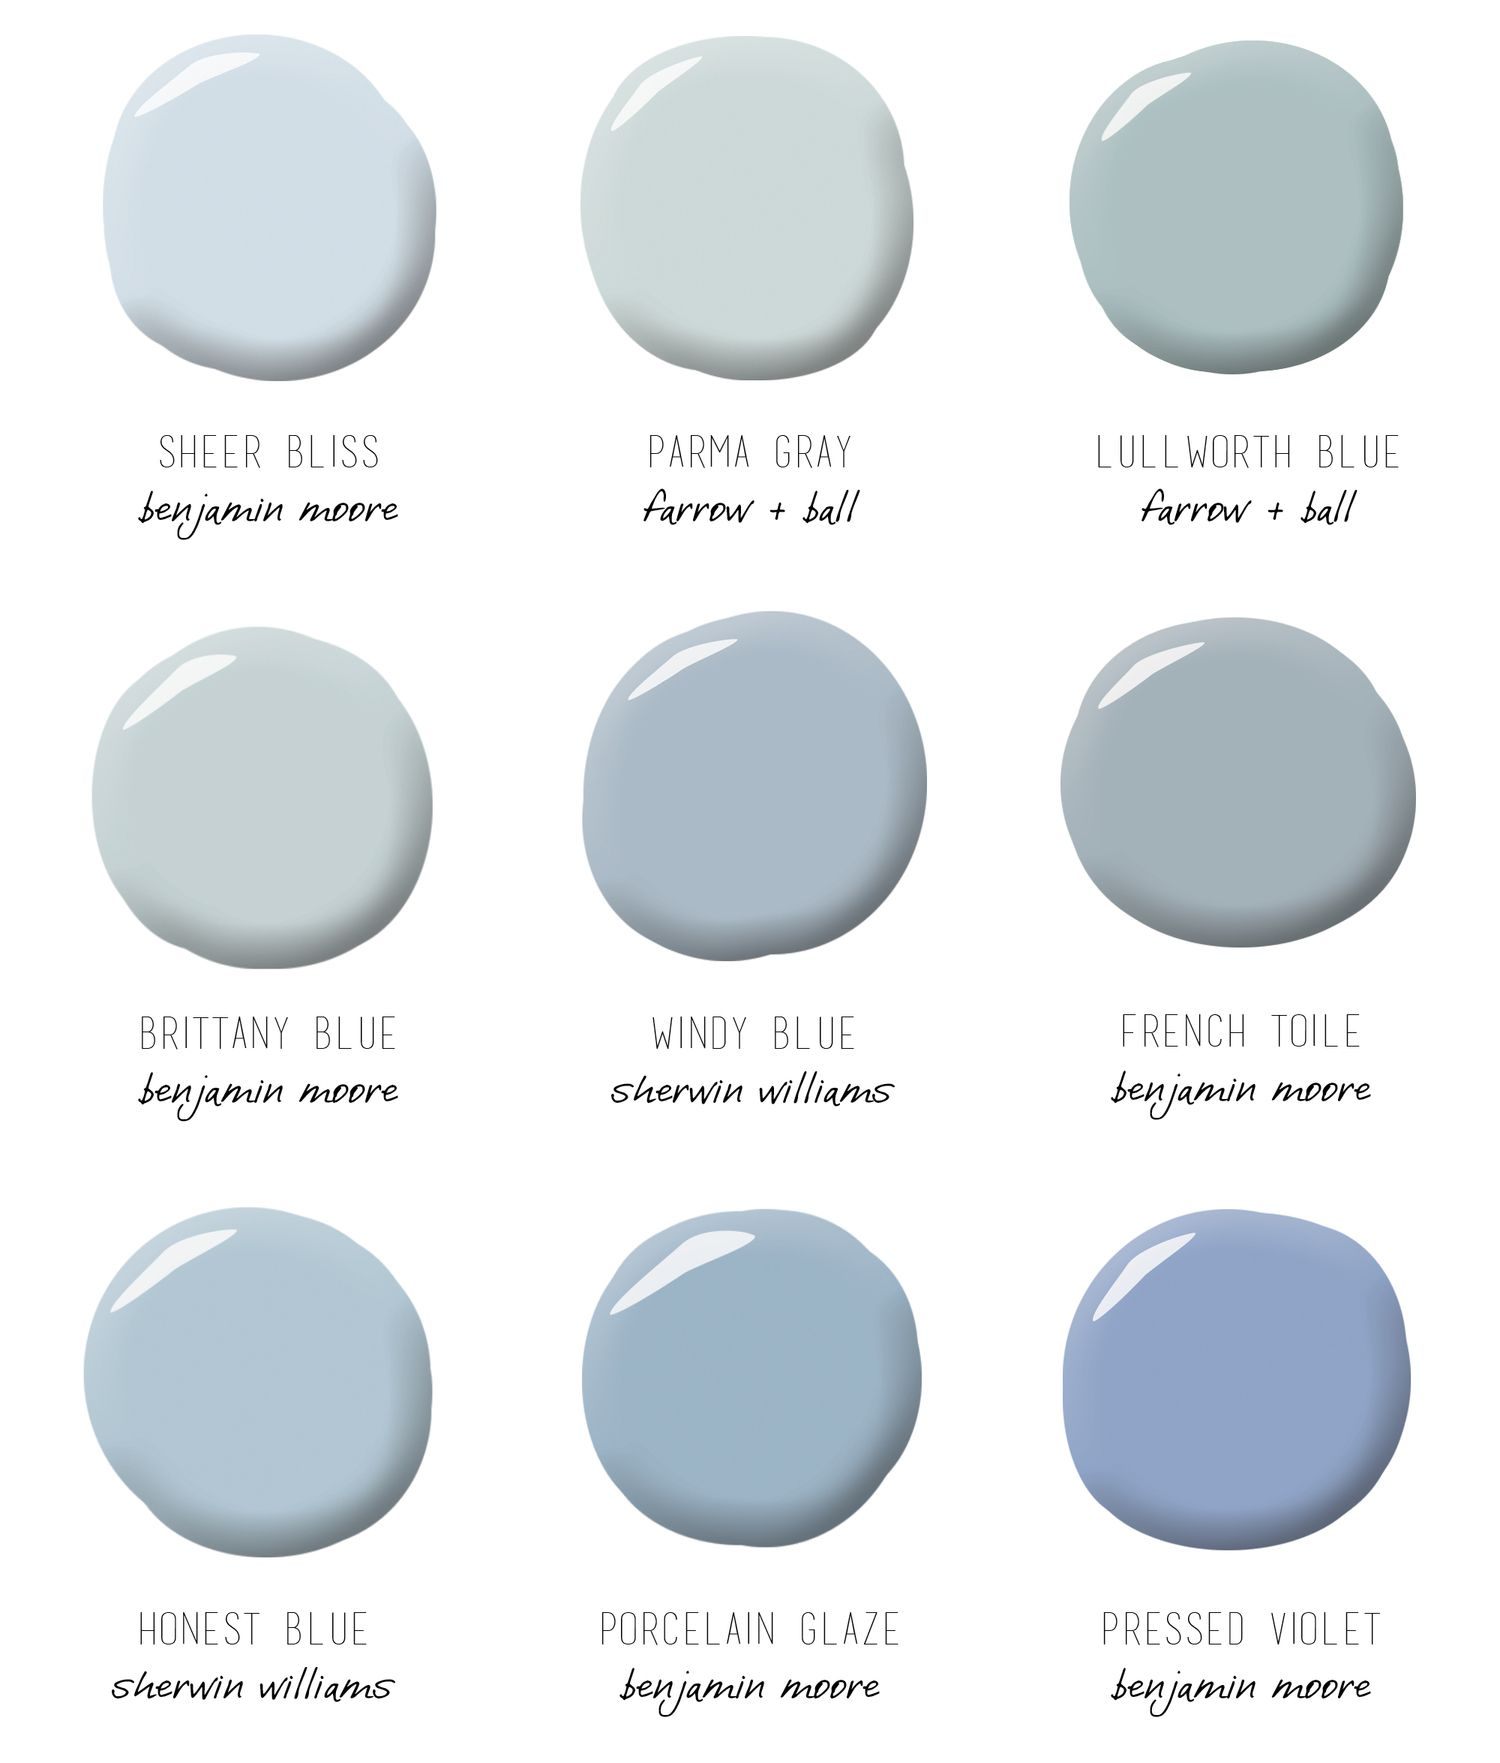 Light Blue U2014 Rehabitat. Source:  Http://rehabitat Interiors.com/blog/2016/8/5/repinned Light Blue